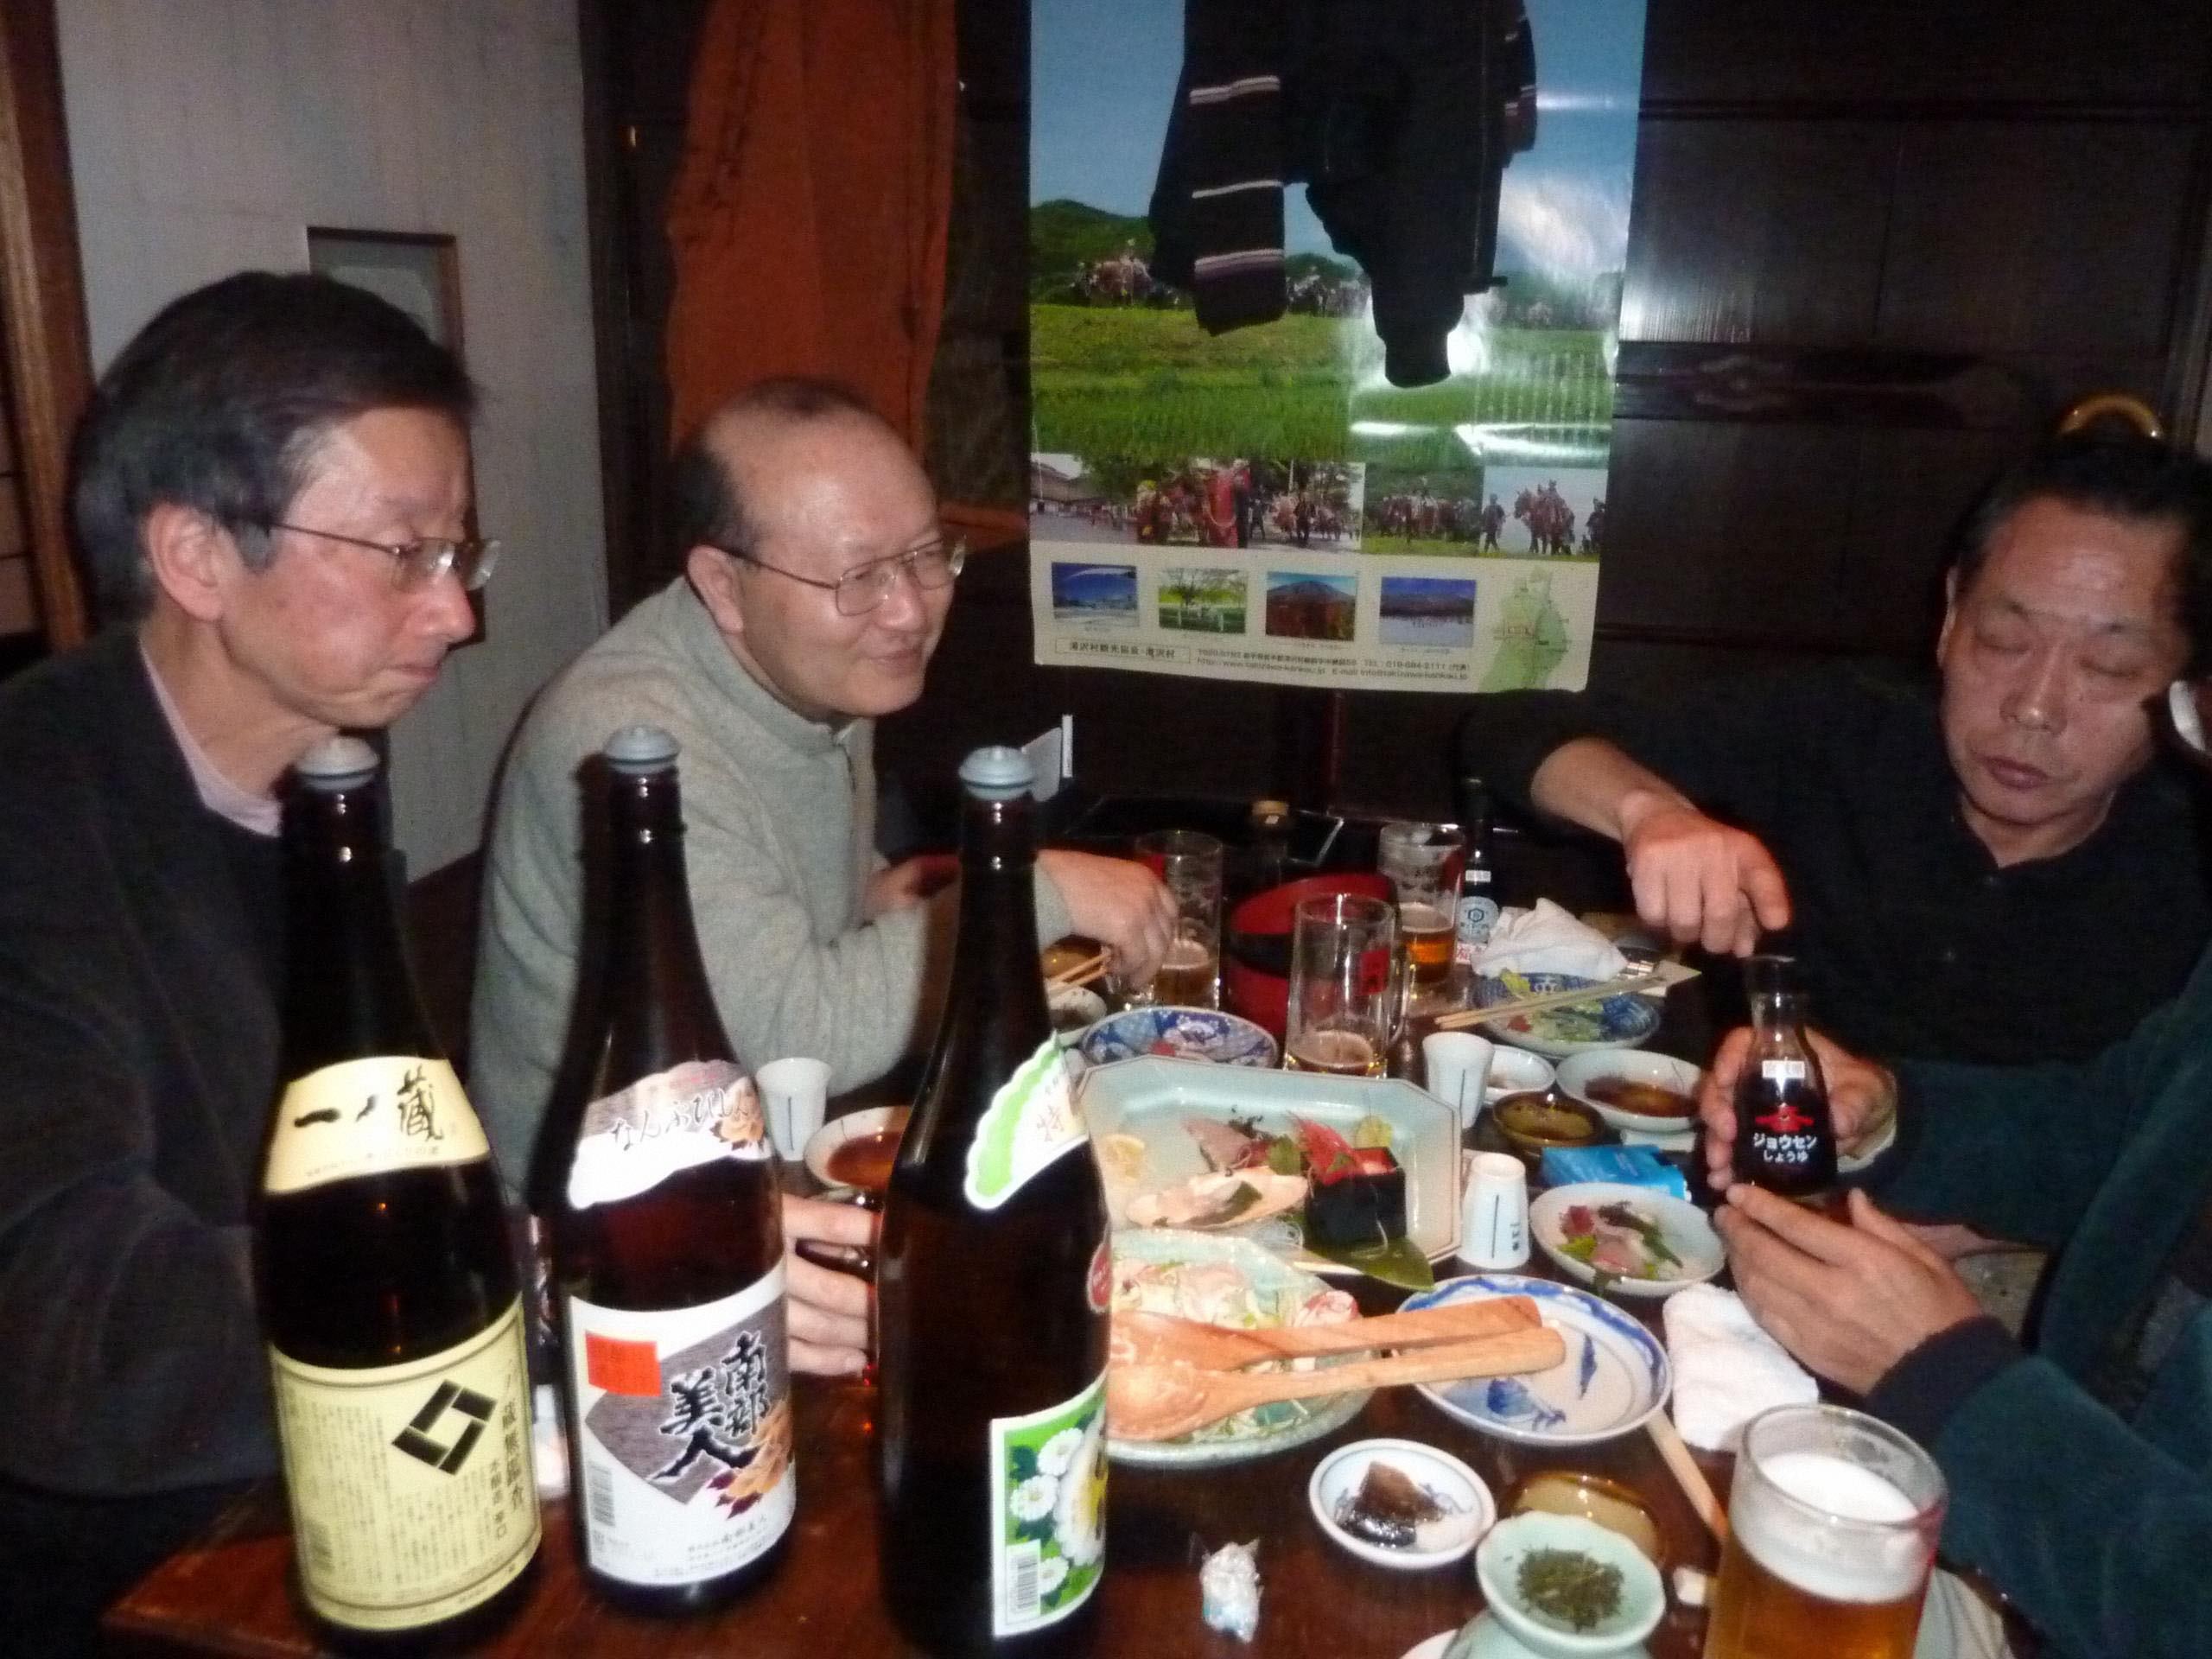 Tastes good, feels good: Customers sample dishes and sake from Iwate, Miyagi and Fukushima prefectures at the Reconstruction Support Tavern in Tokyo on Feb. 14. The eatery will donate all its profits through September to rebuilding work in Tohoku. | KYODO PHOTOS